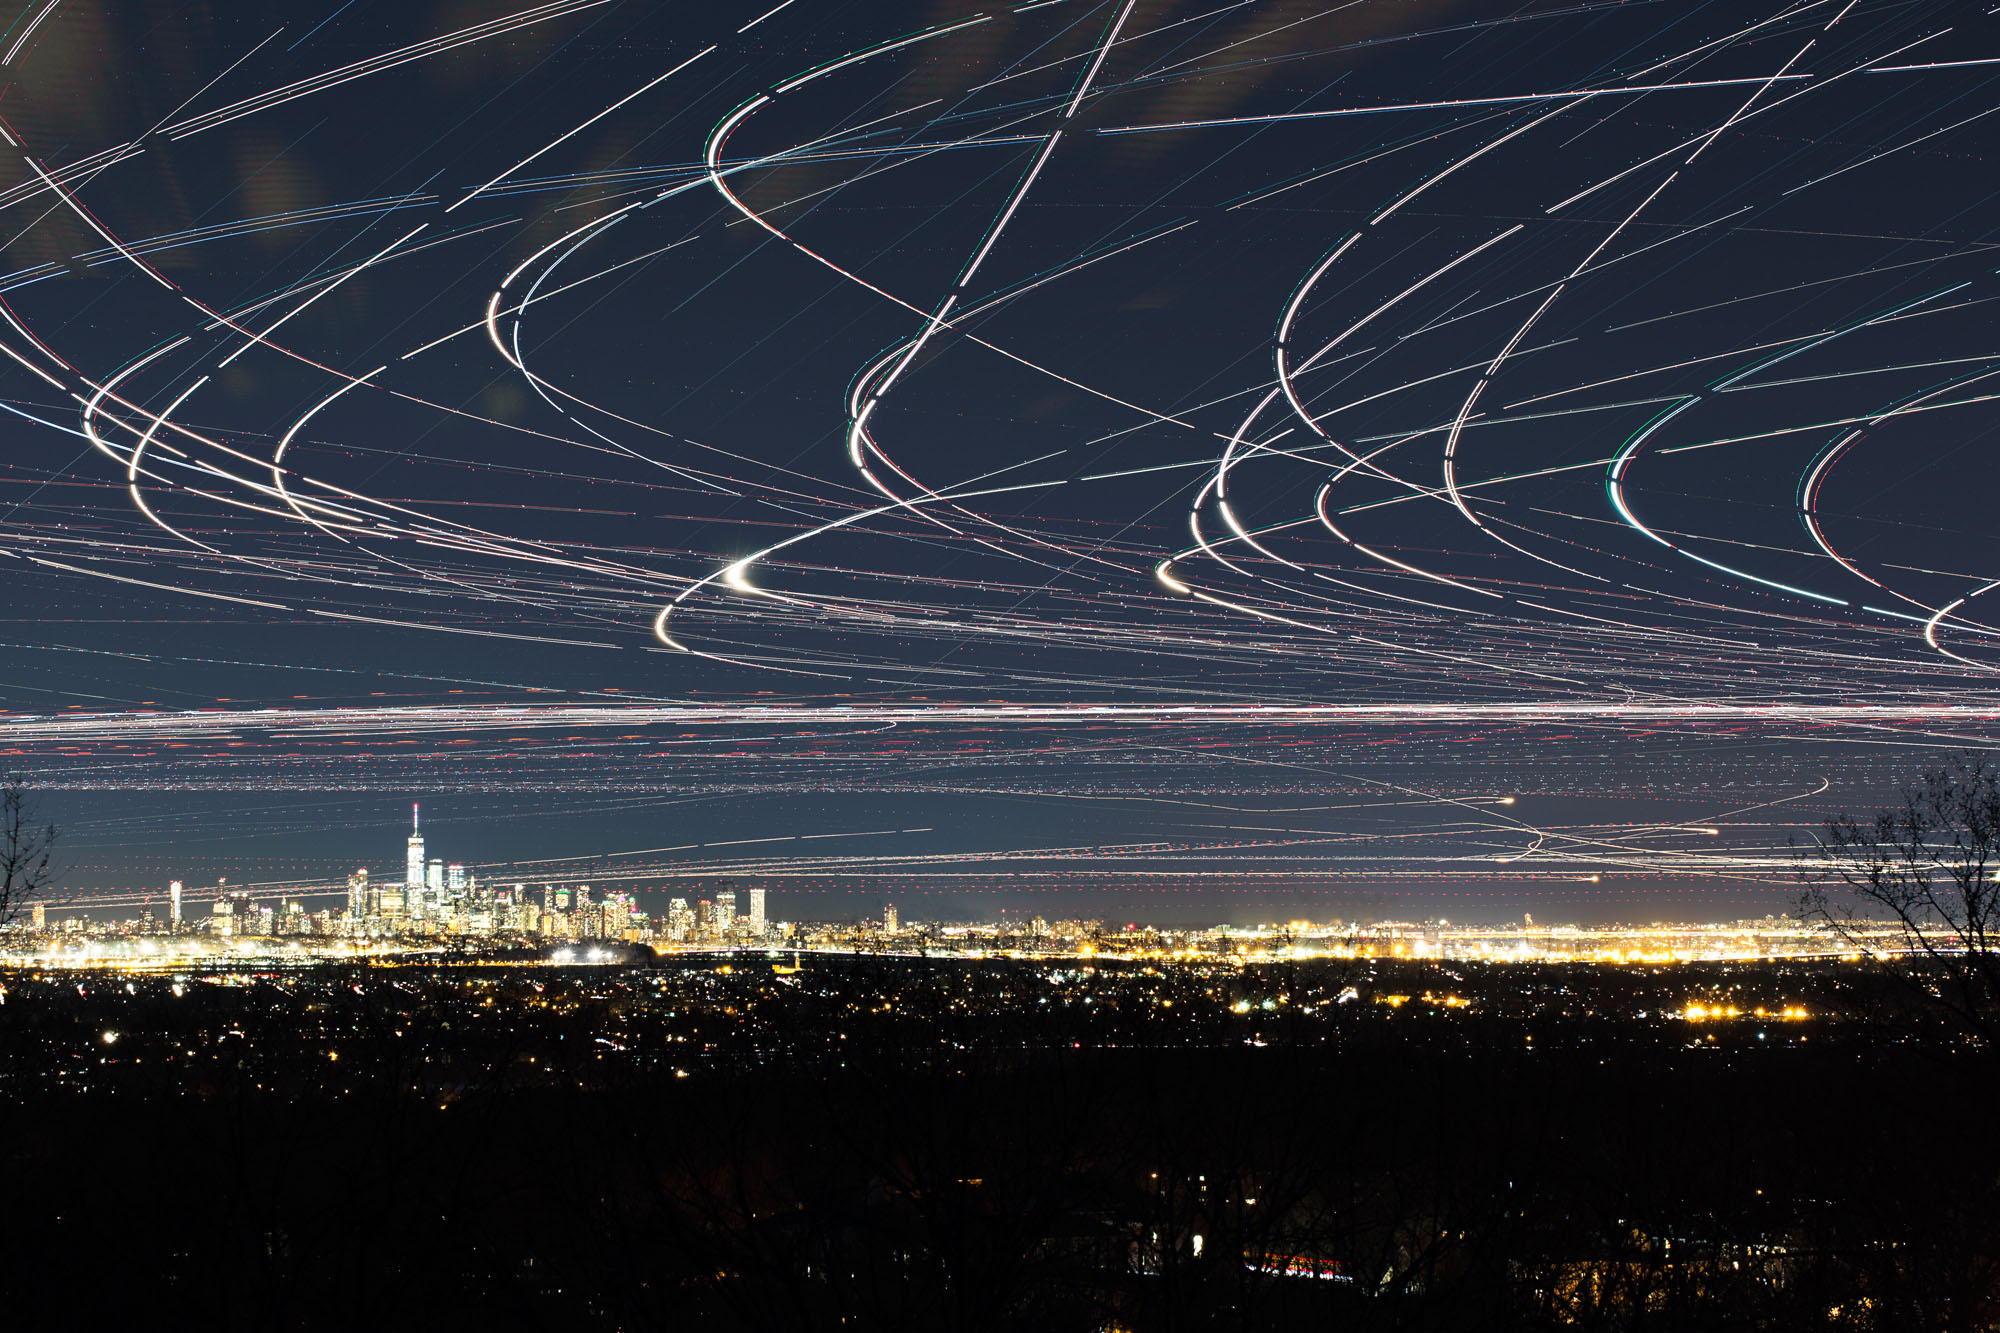 Time-Lapse Photographs Capture Swarms of Airplane Lights as They Streak Across the Night Sky